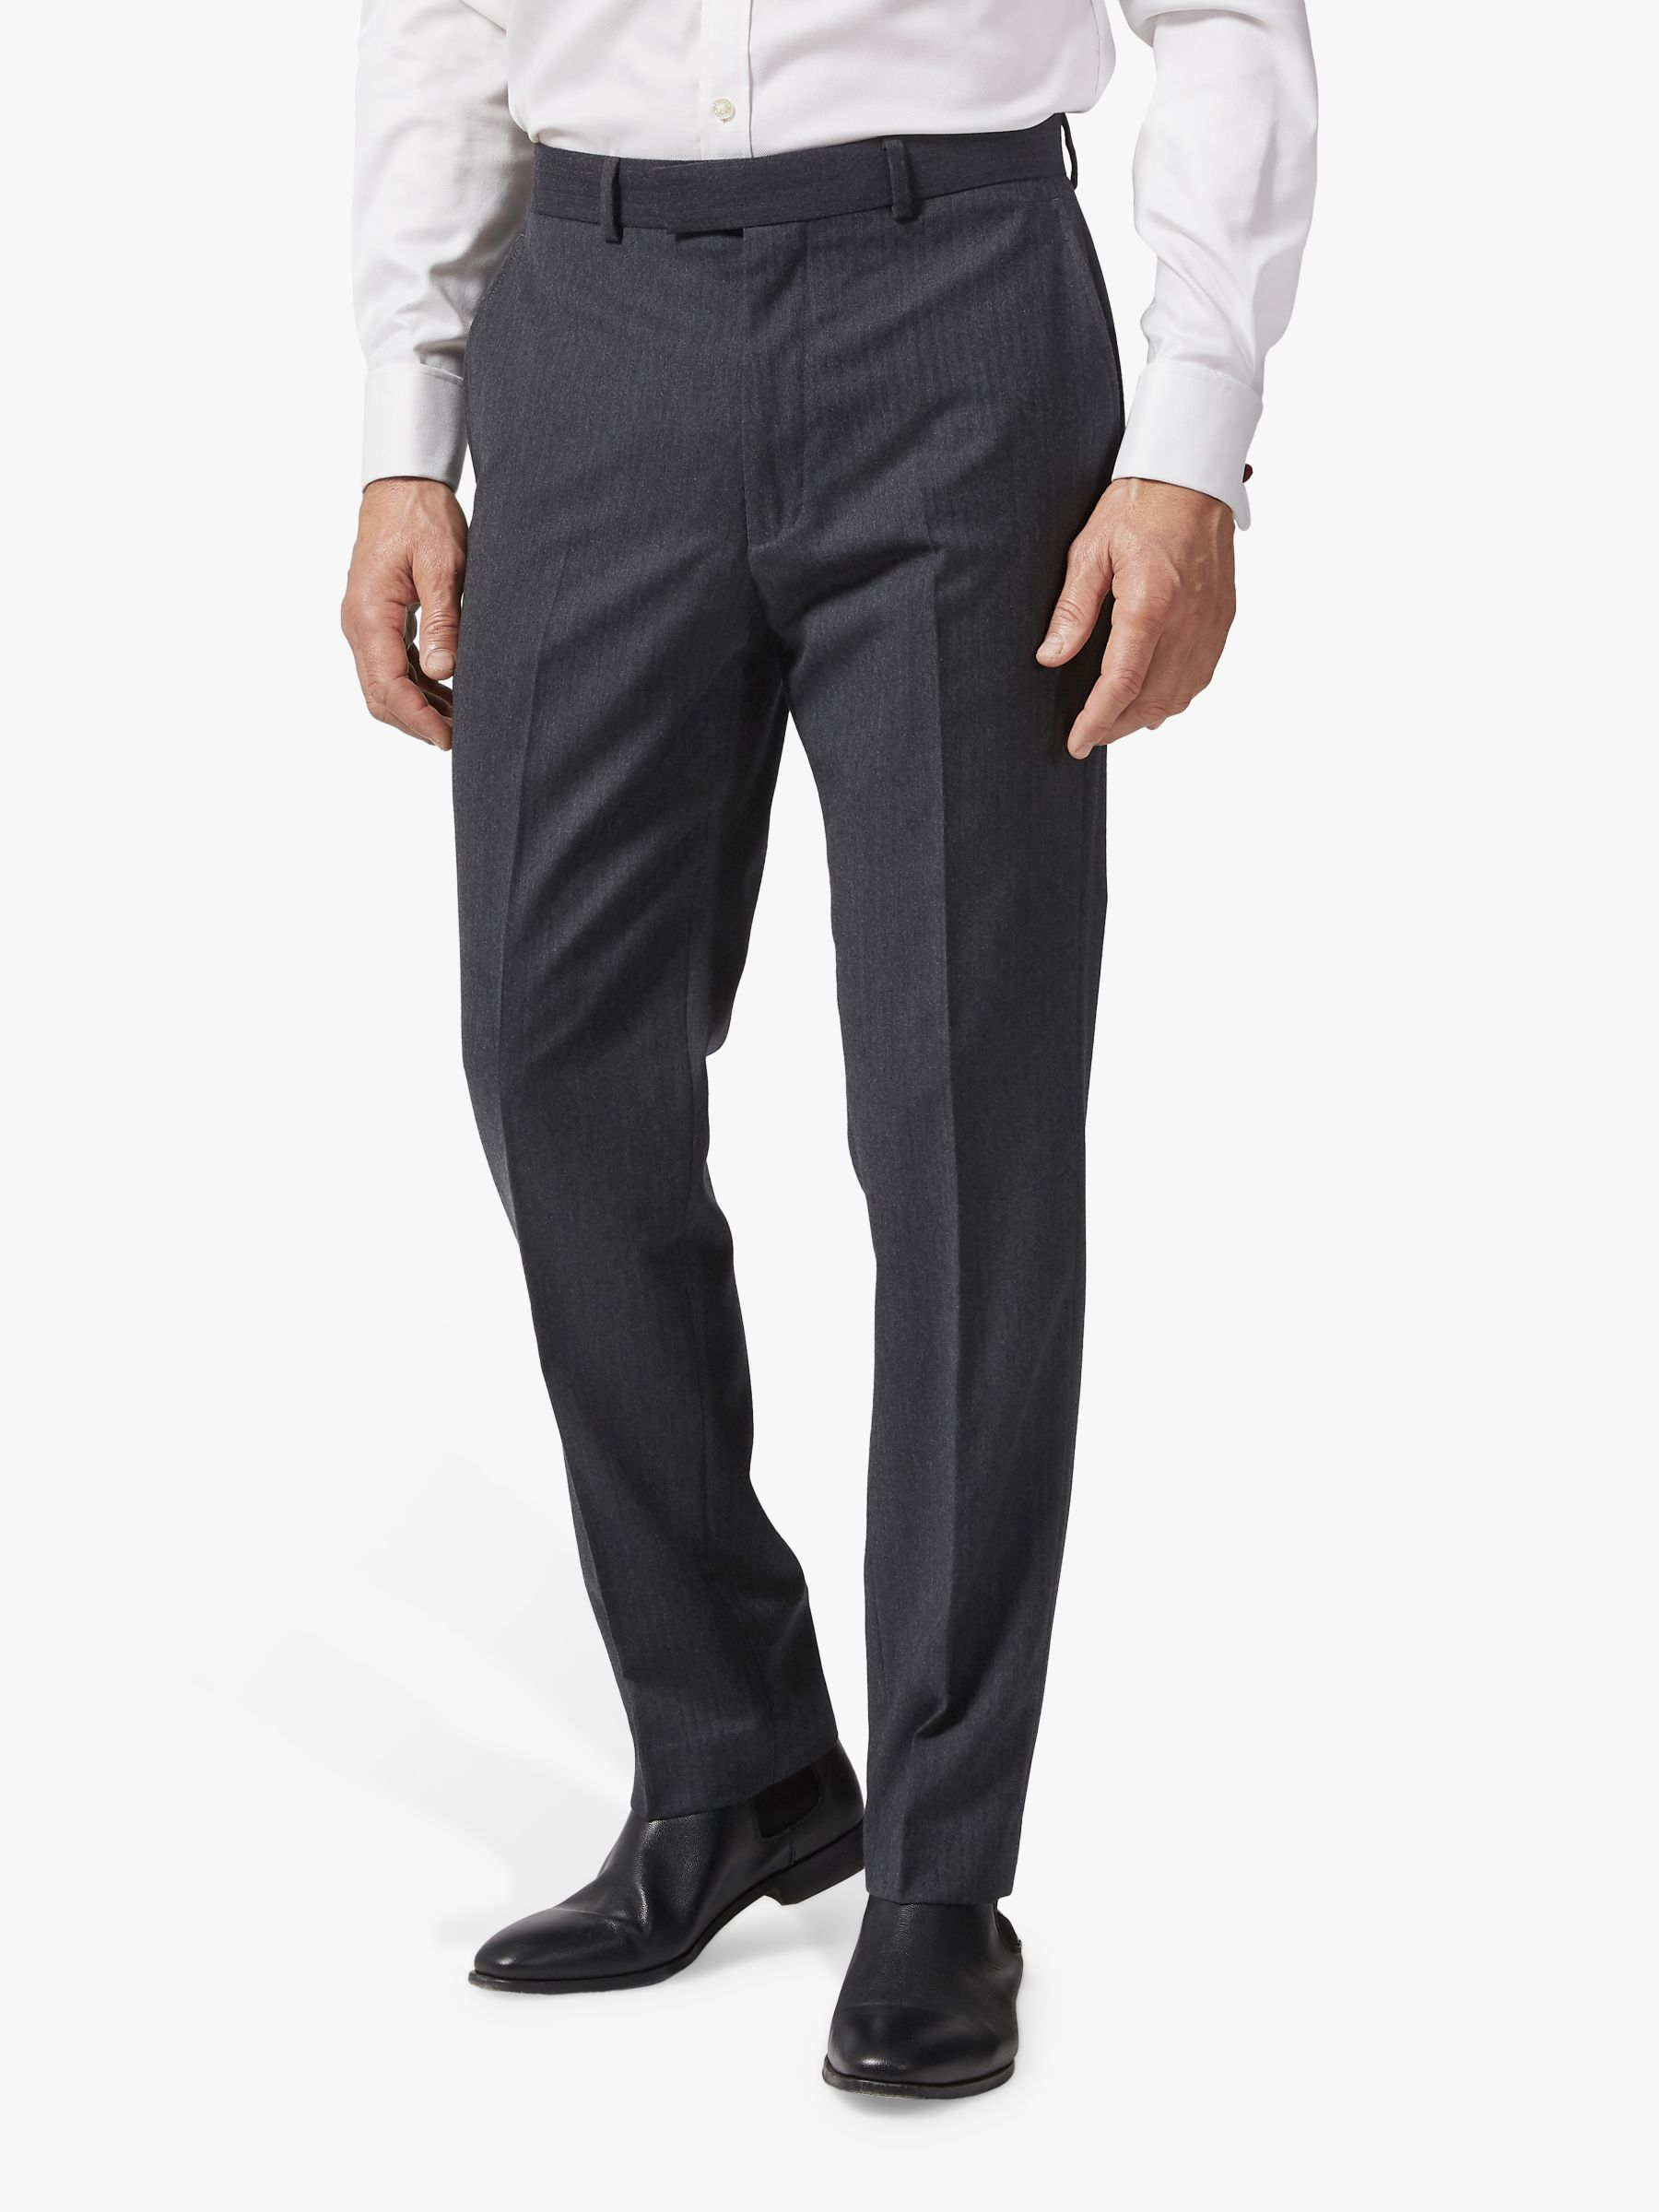 Chester by Chester Barrie Chester by Chester Barrie Herringbone Wool Cashmere Tailored Suit Trousers, Charcoal